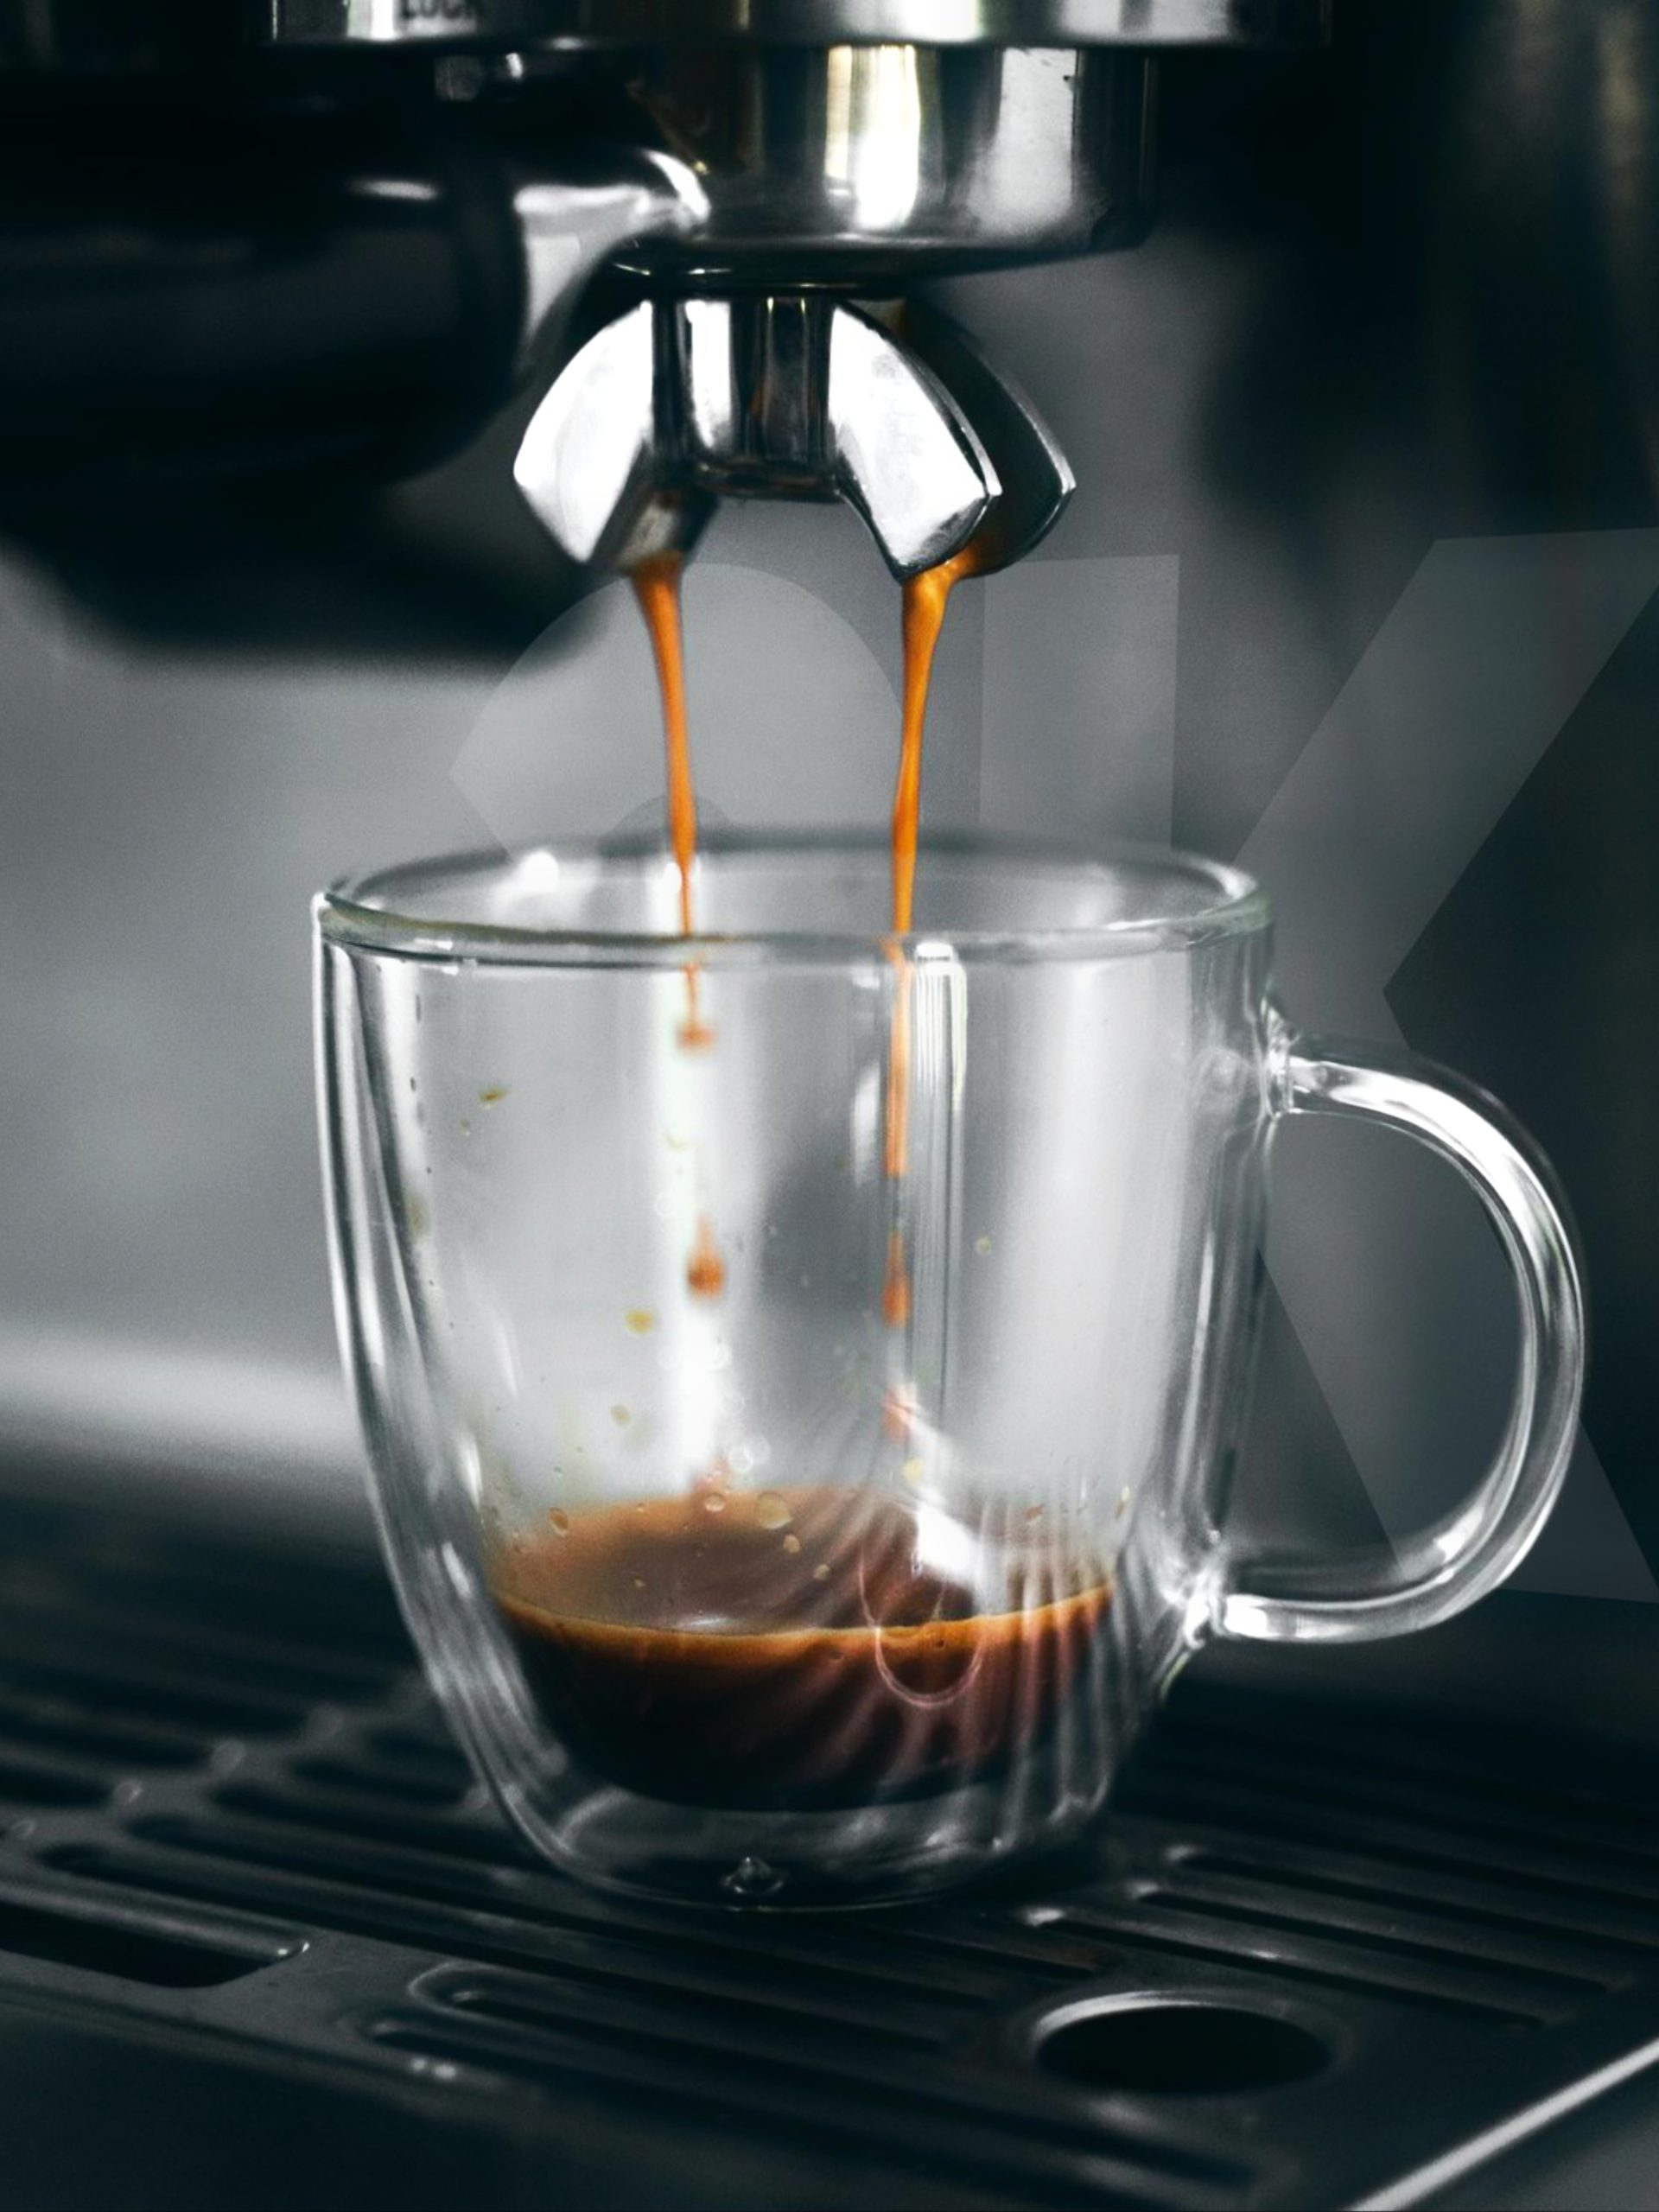 Pouring coffee from machine